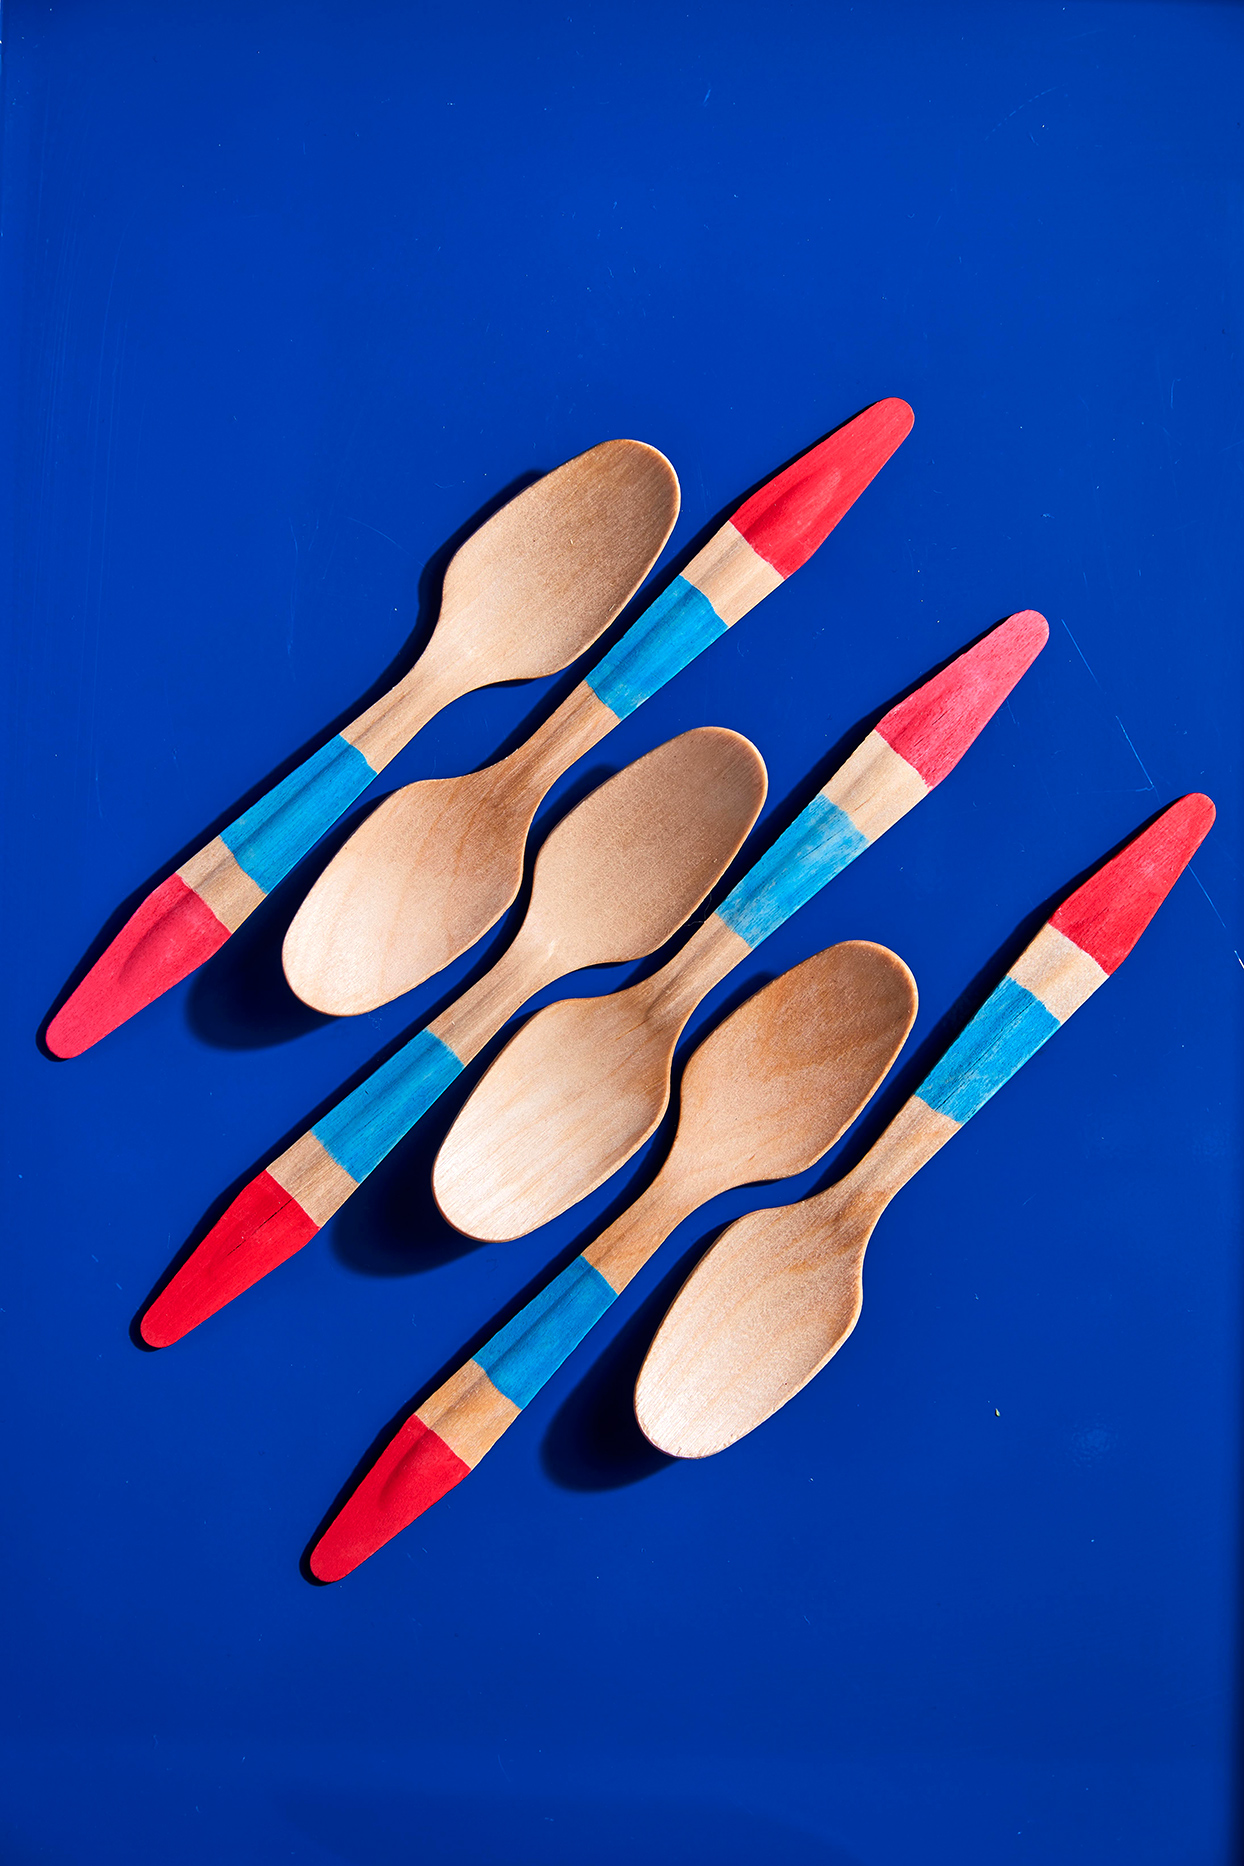 blue and red striped wooden spoons